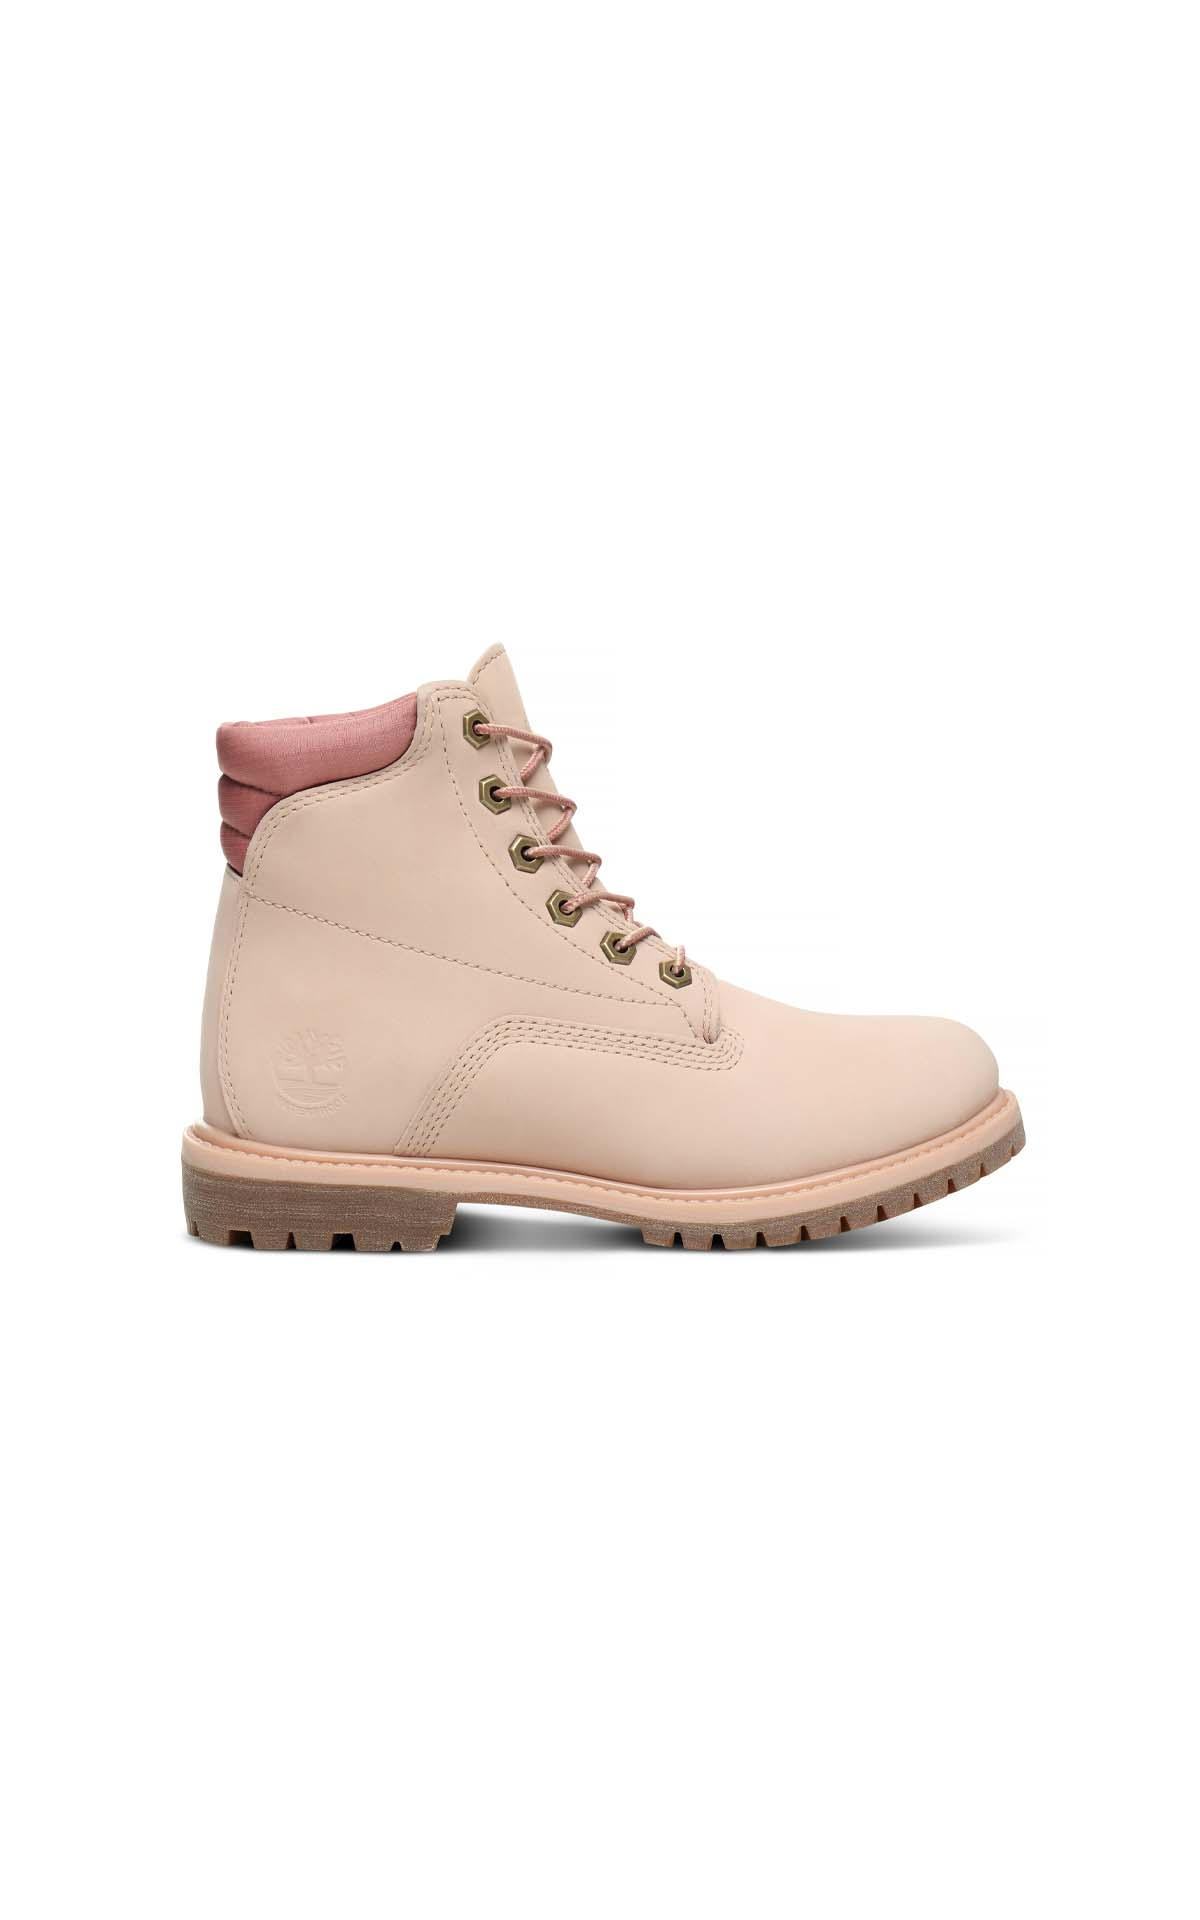 Timberland Women's Light Pink Nubuck  Waterville 6in Basic WP